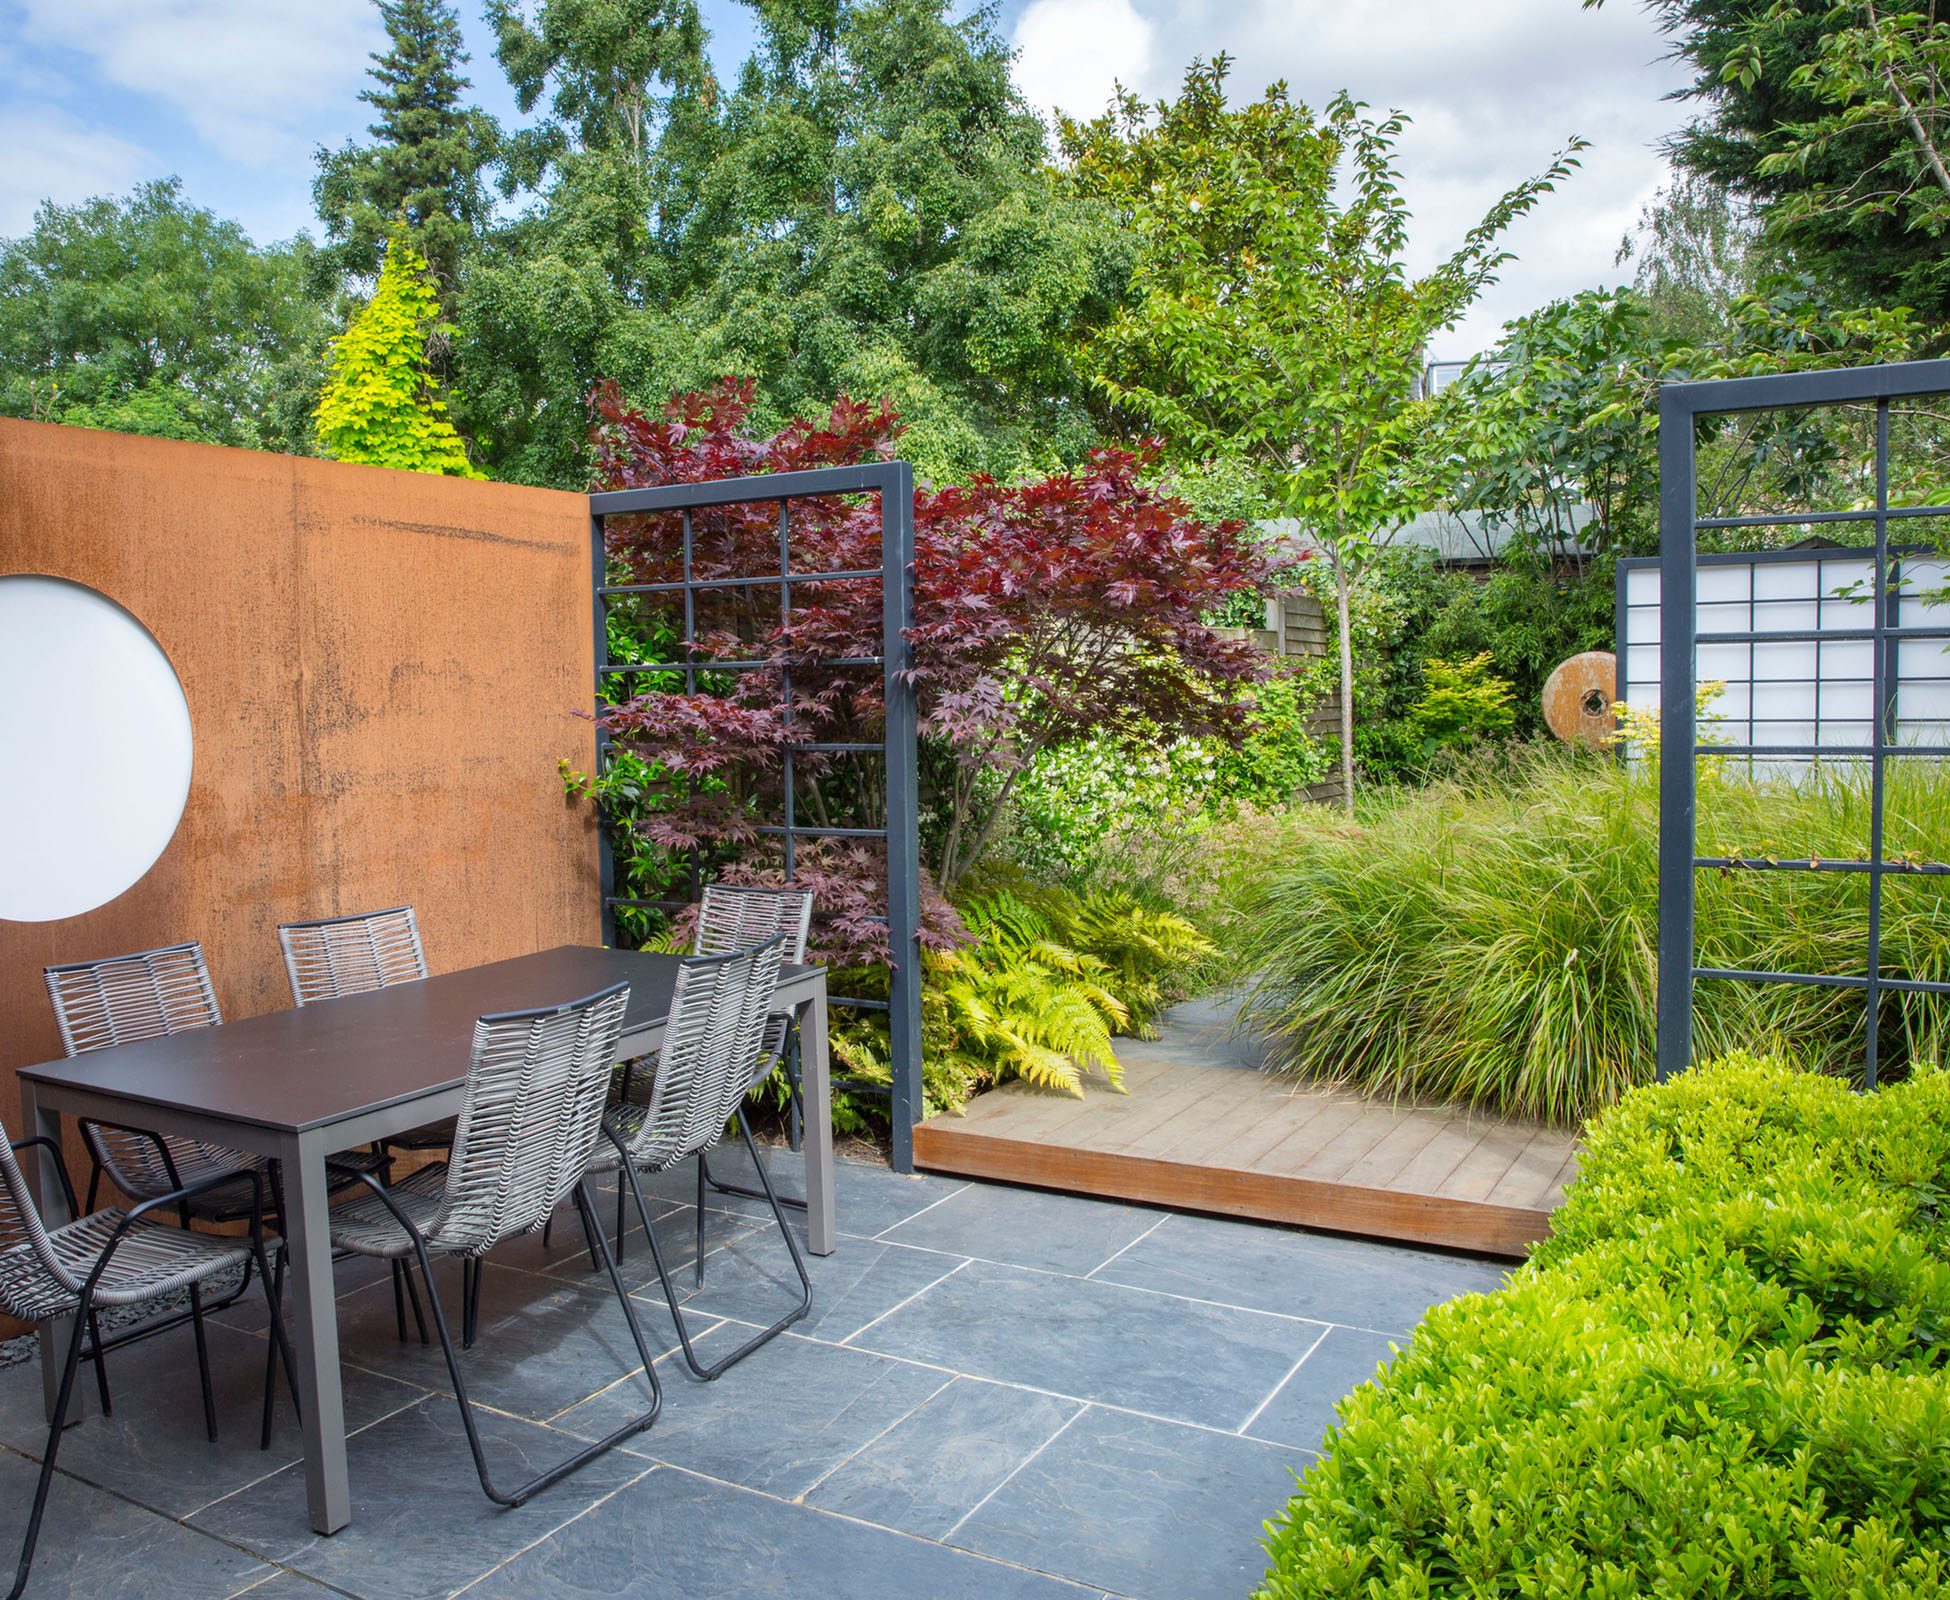 A Corten Steel Moon window becomes a feature of this garden.